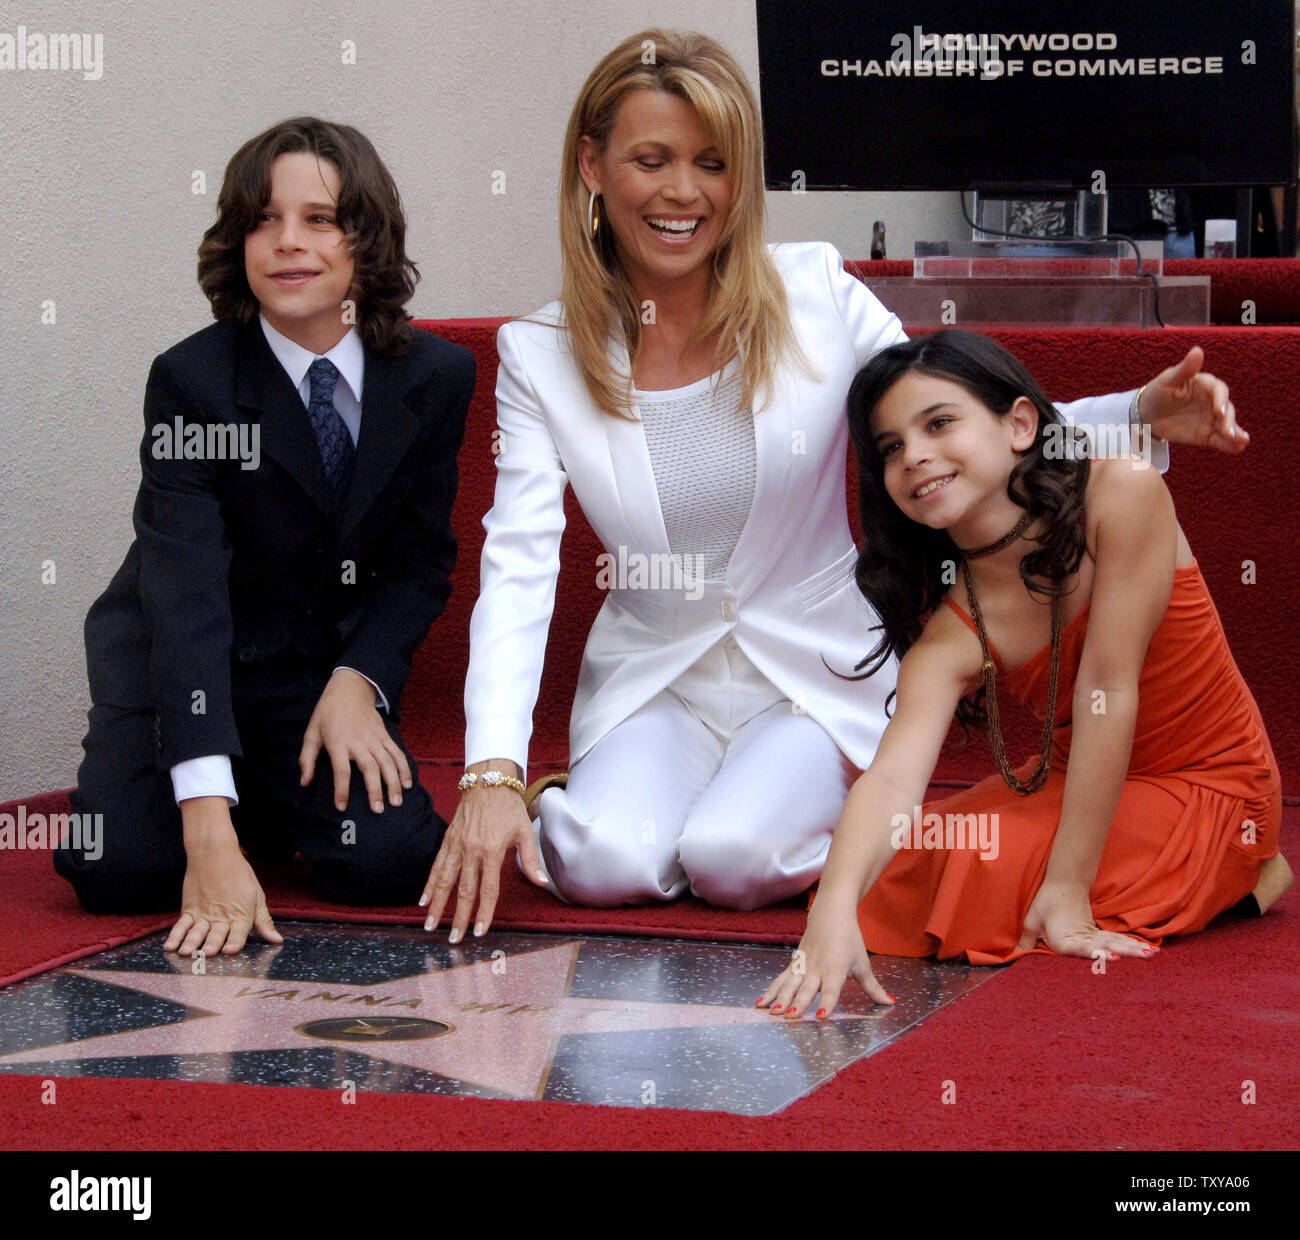 57fa38f39d Television personality Vanna White (C) smiles for photographers with her  12-year-old son Nicholas Santopletro (L) and 9-year-old daughter Giovanna  ...